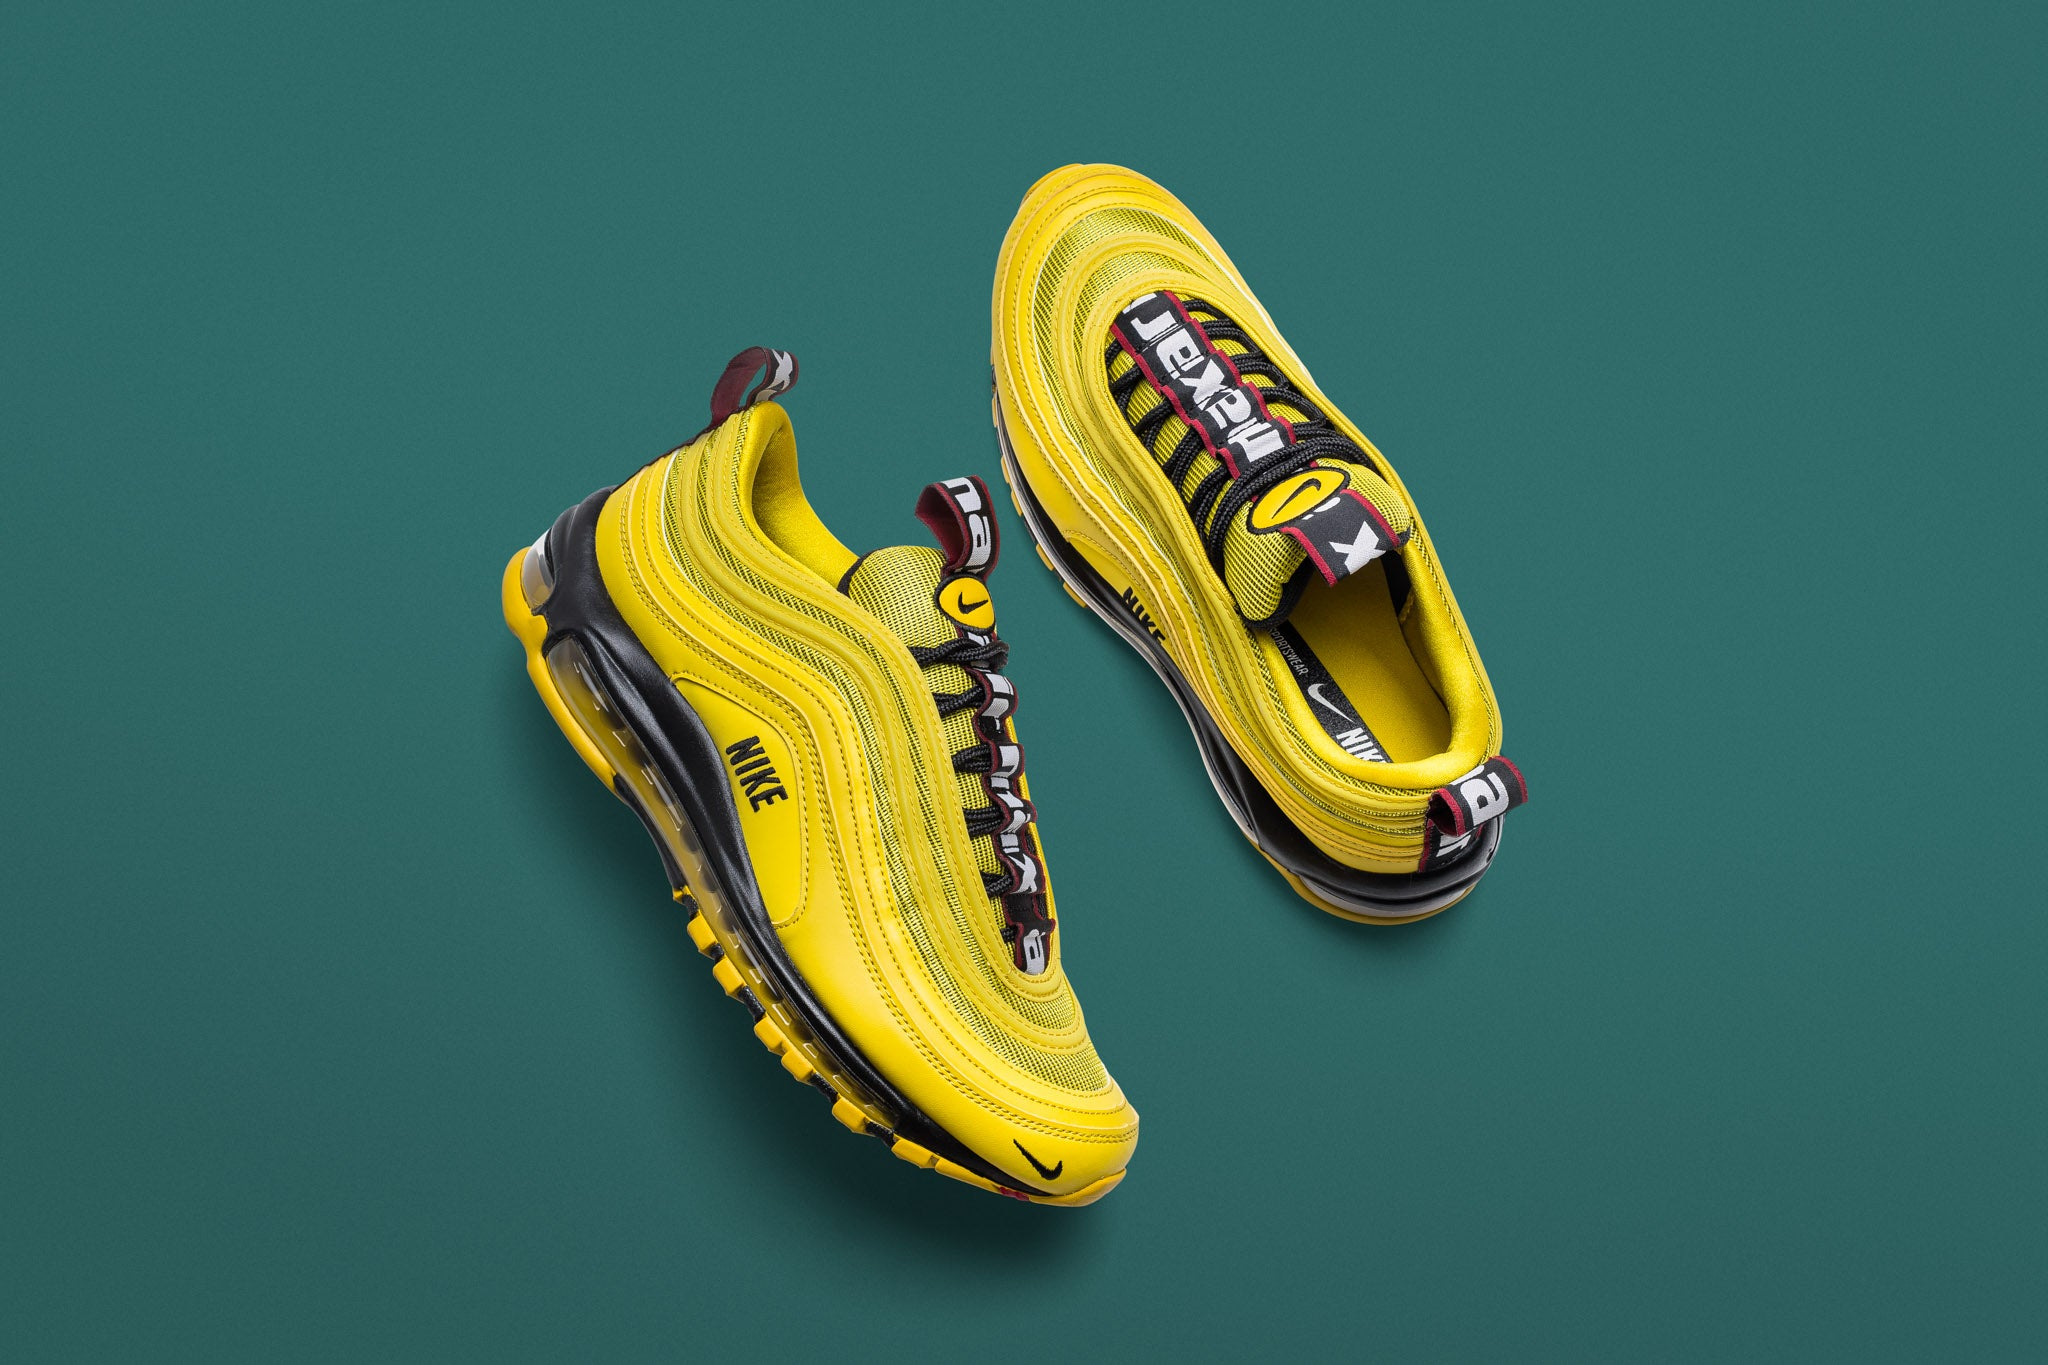 cheap for discount c1240 4e8a1 The latest Air Max 97 spikes the lemonade with a bit of citron yellow and  3M reflective accents this time around. The upper combines synthetics and  textile ...